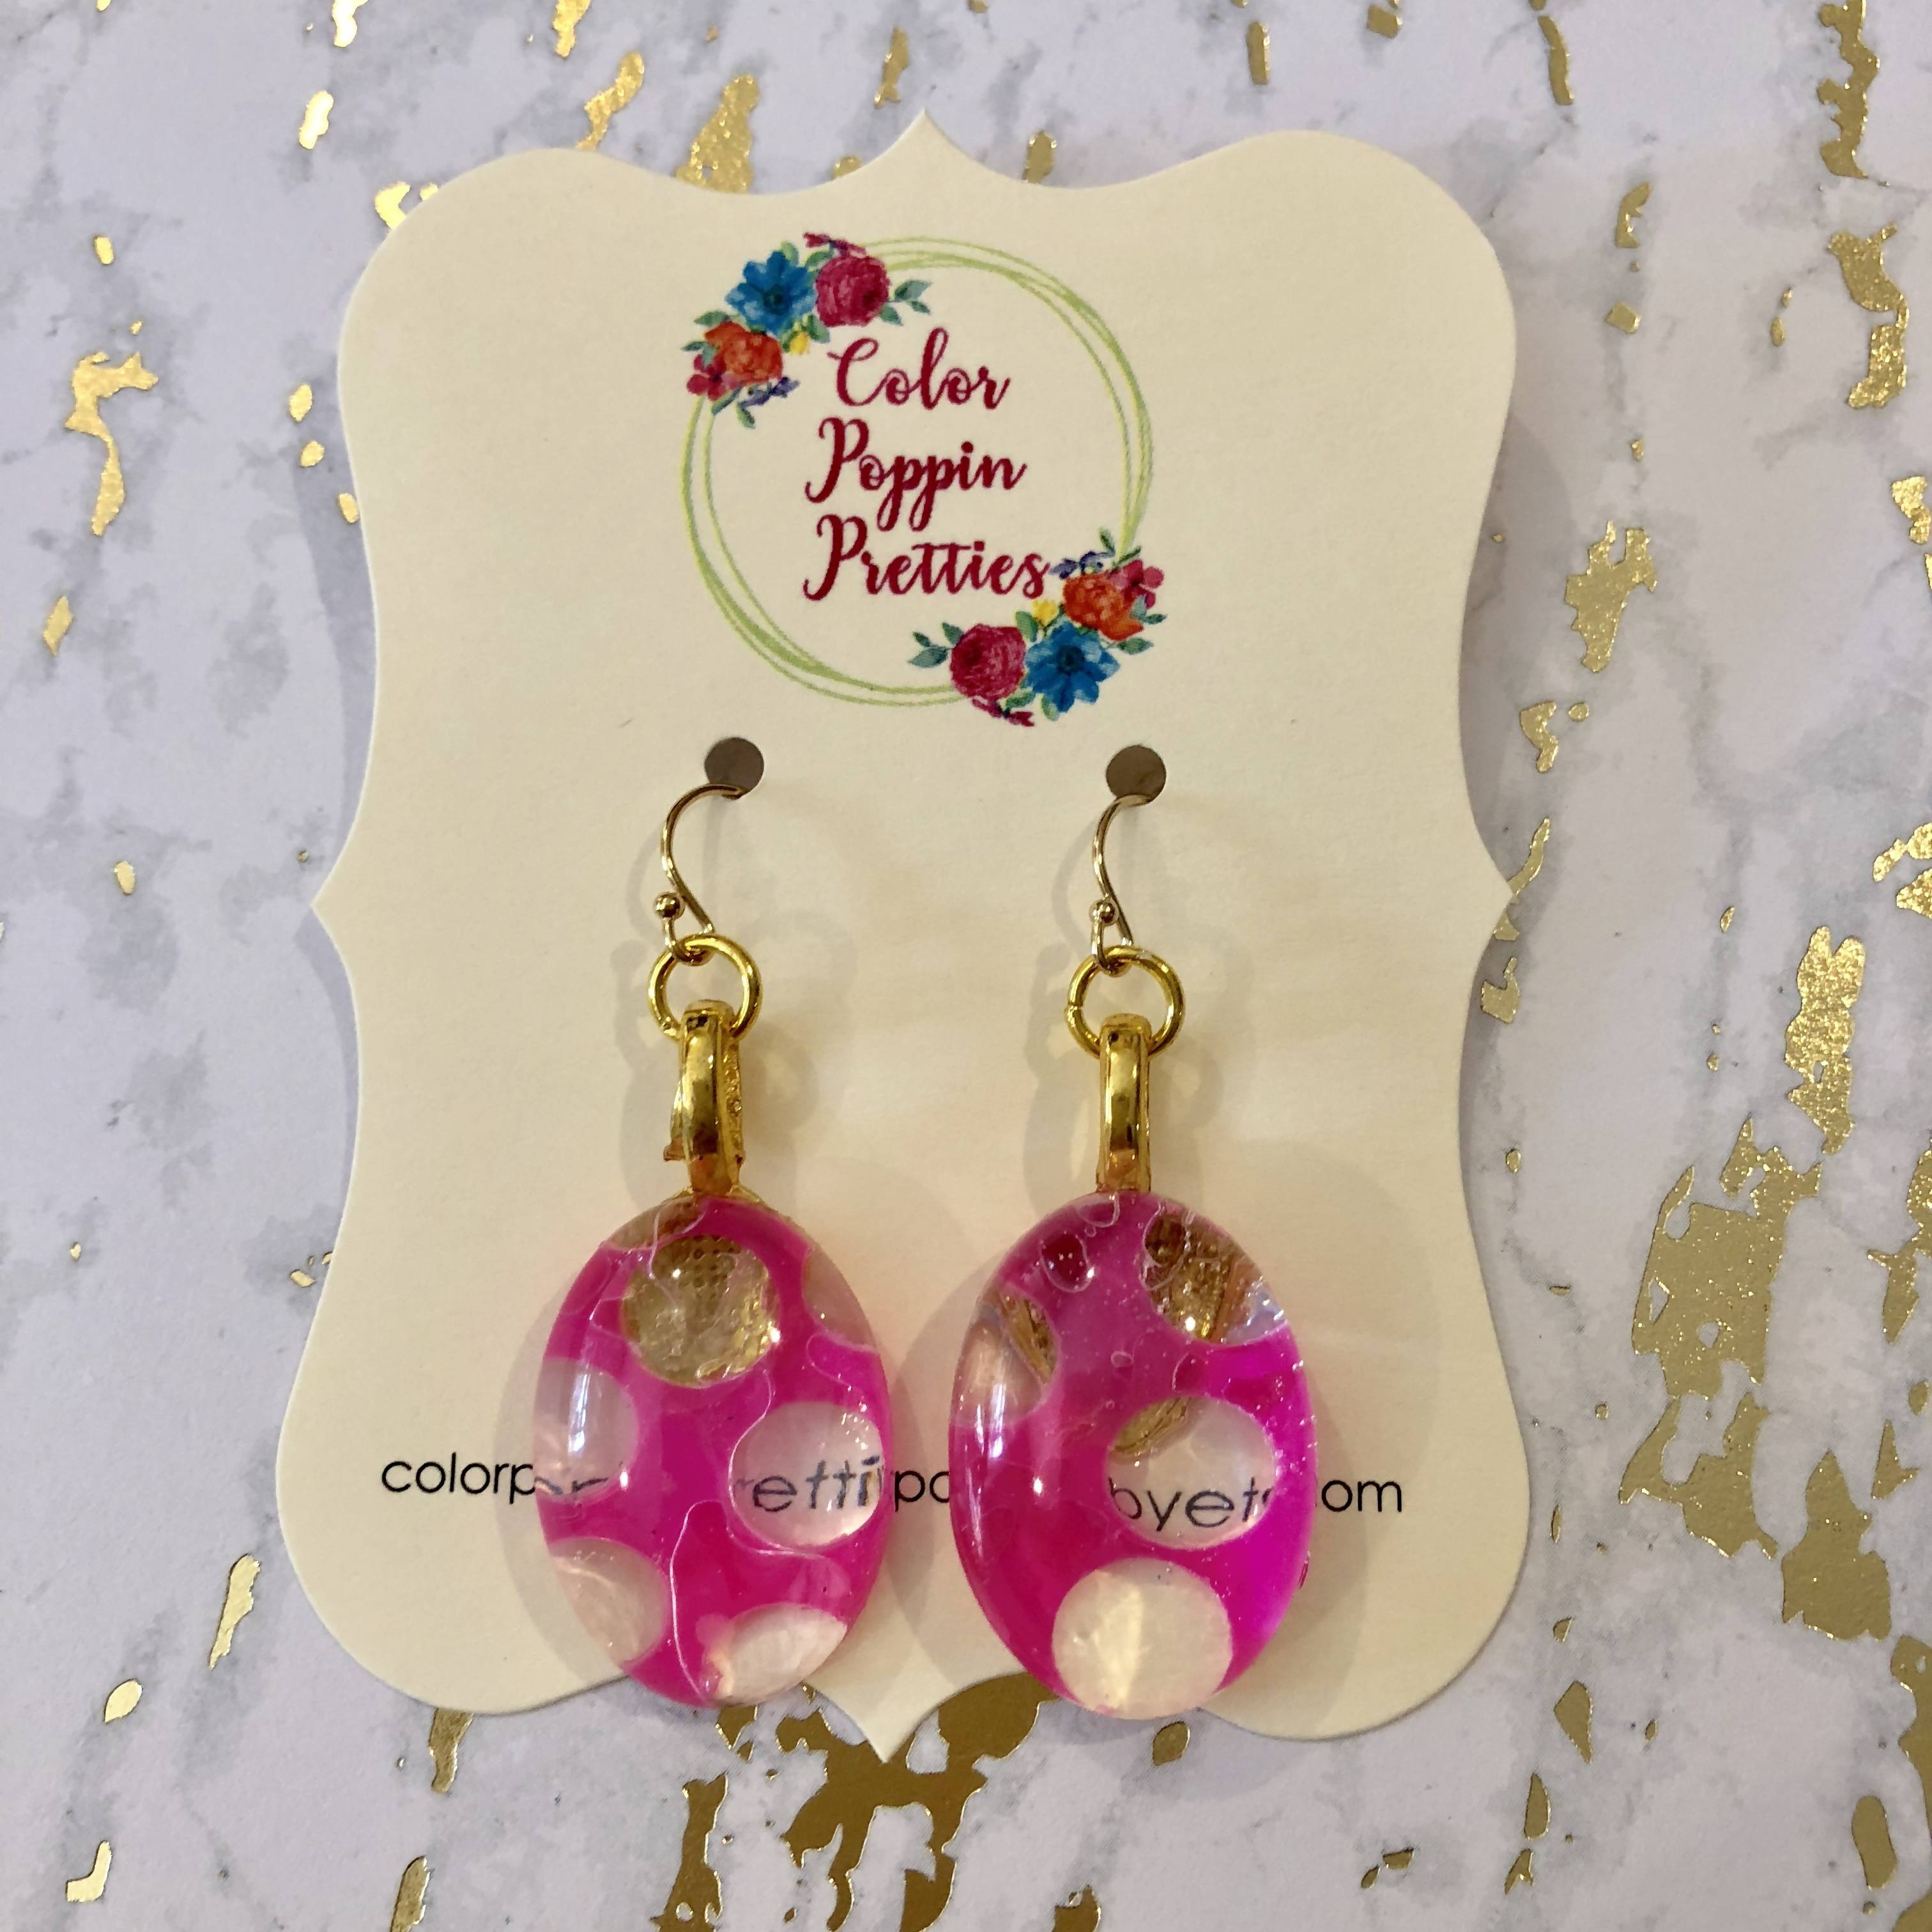 Oval earrings - resin and bright pink polka dots with 14K gold filled hooks